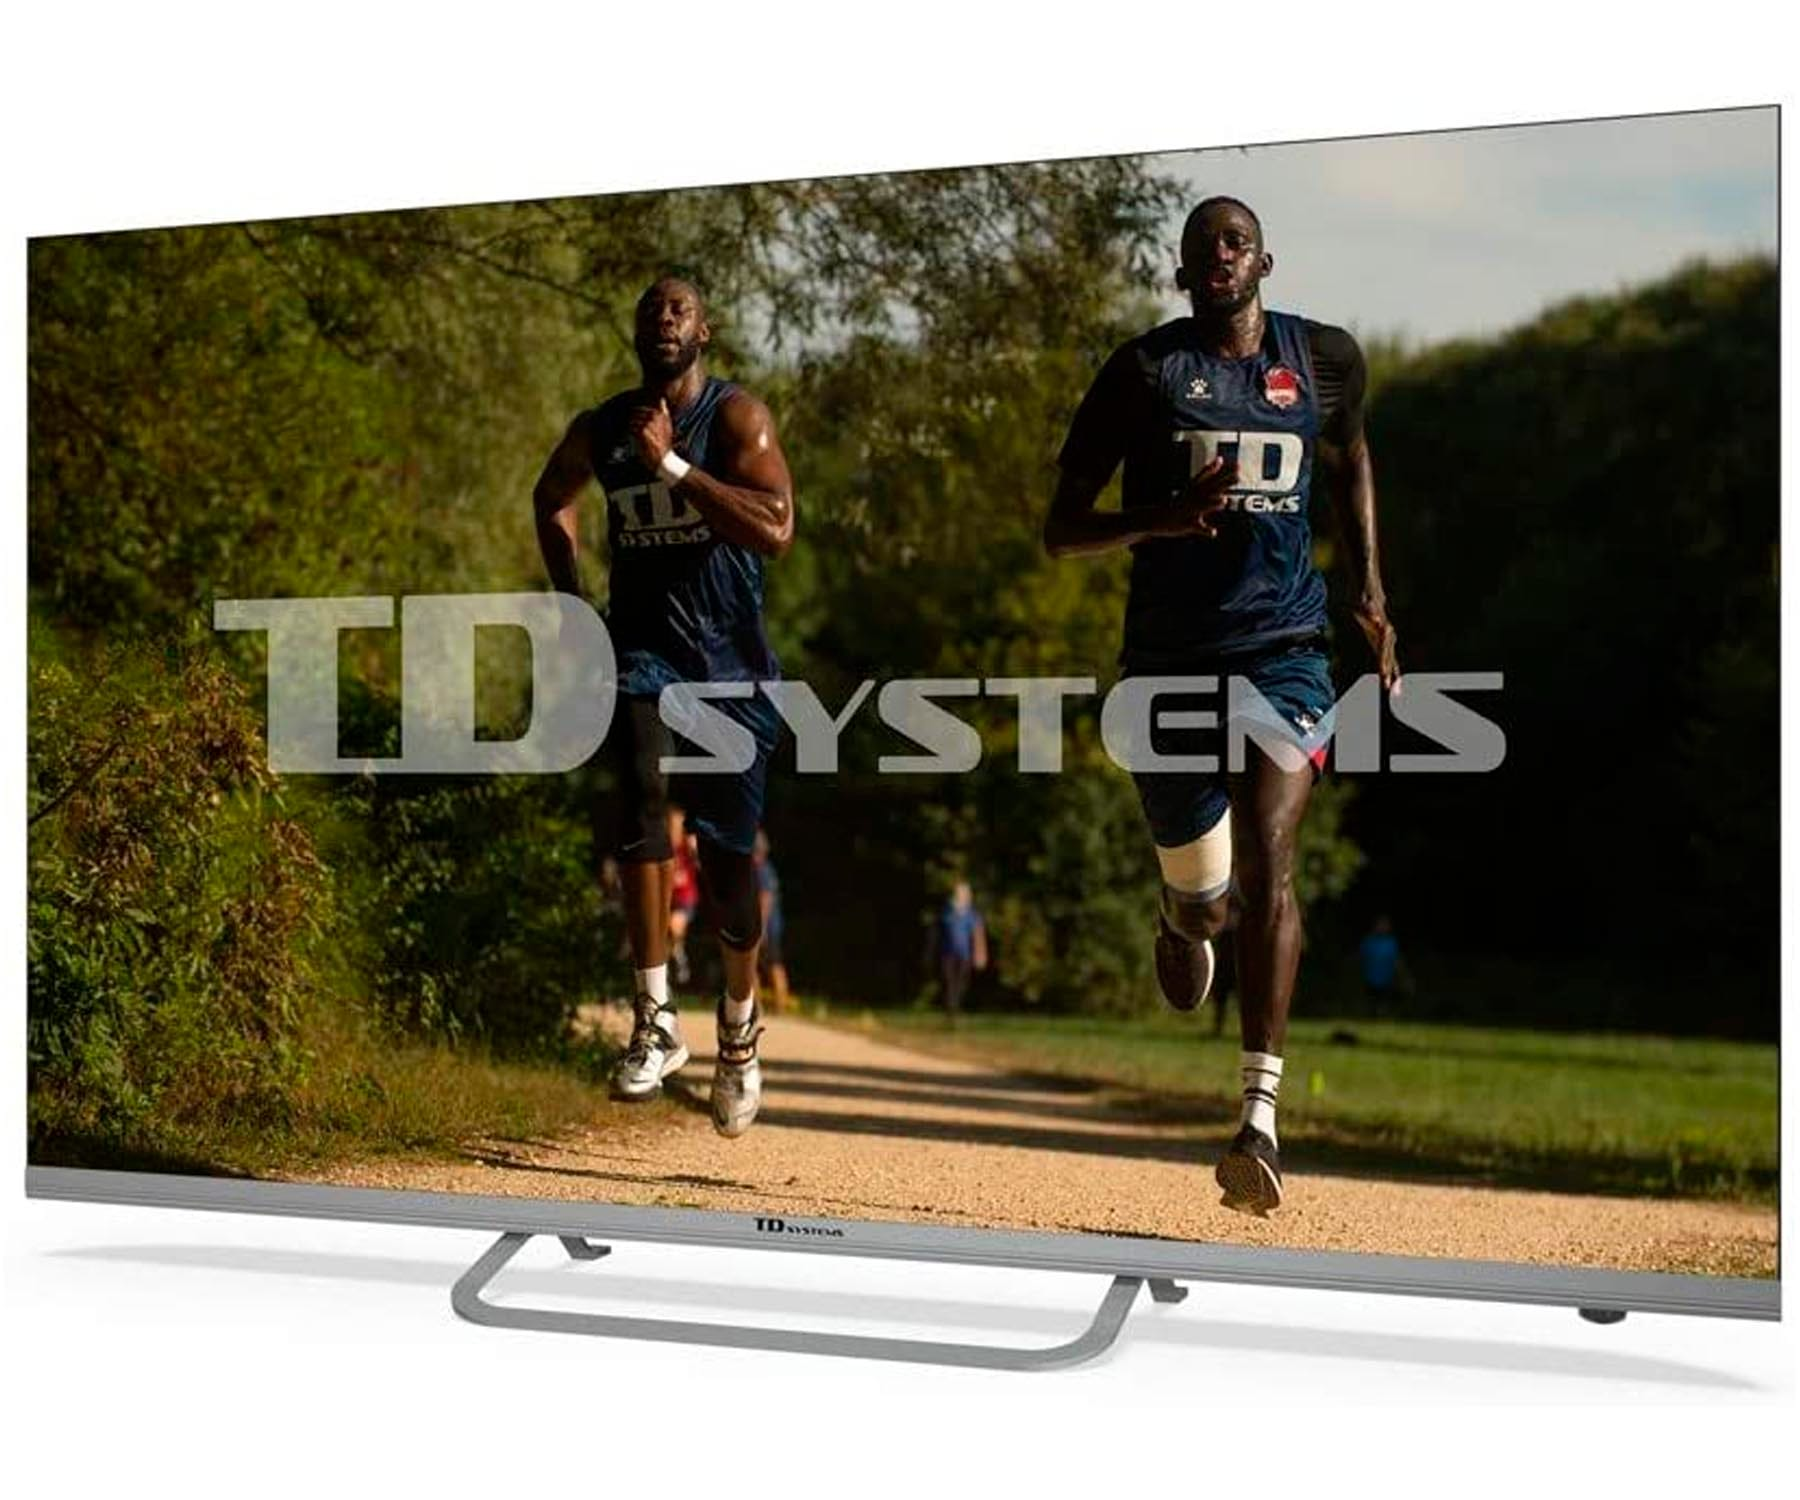 TD SYSTEMS K50DLX11US TELEVISOR 50'' LED SMART TV UHD 4K HDMI USB CI+ DOLBY DIGITAL PLUS